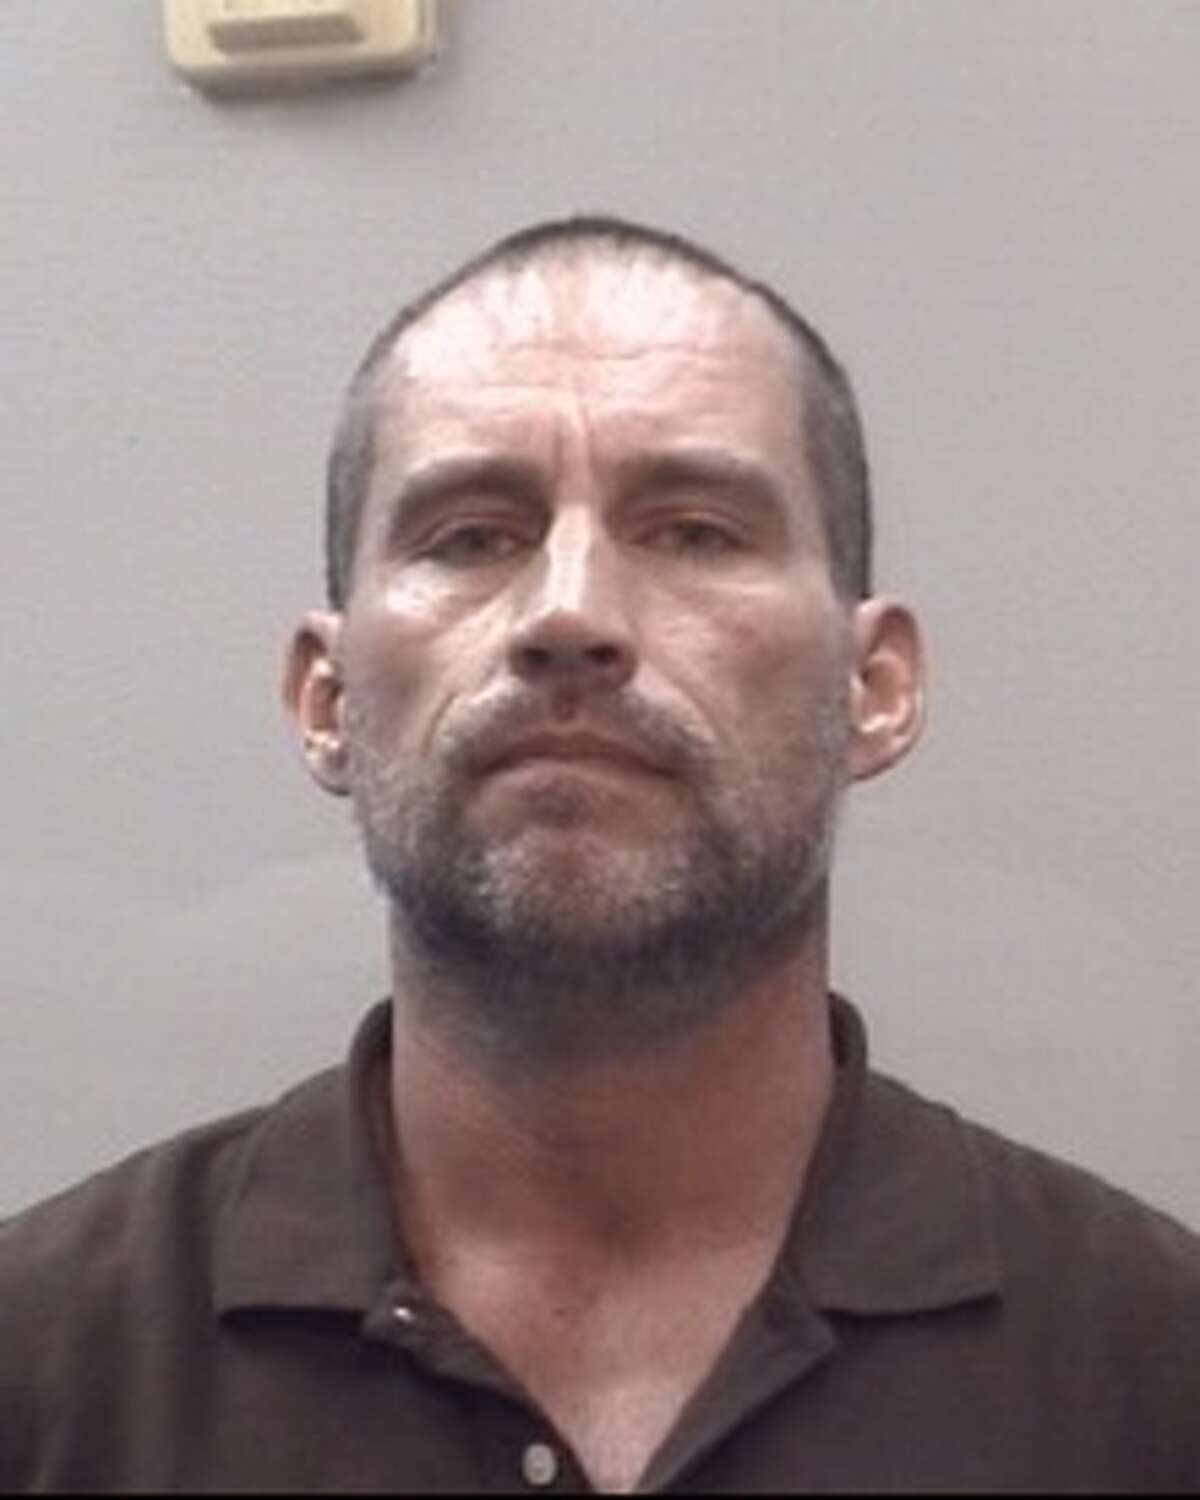 Stephen McGee, 44, is accused of stalking an ex-girlfriend and posting nude photos of the victim on a public Facebook page. The alleged stalking occurred over a period of several months from December 2017 to March 2018.